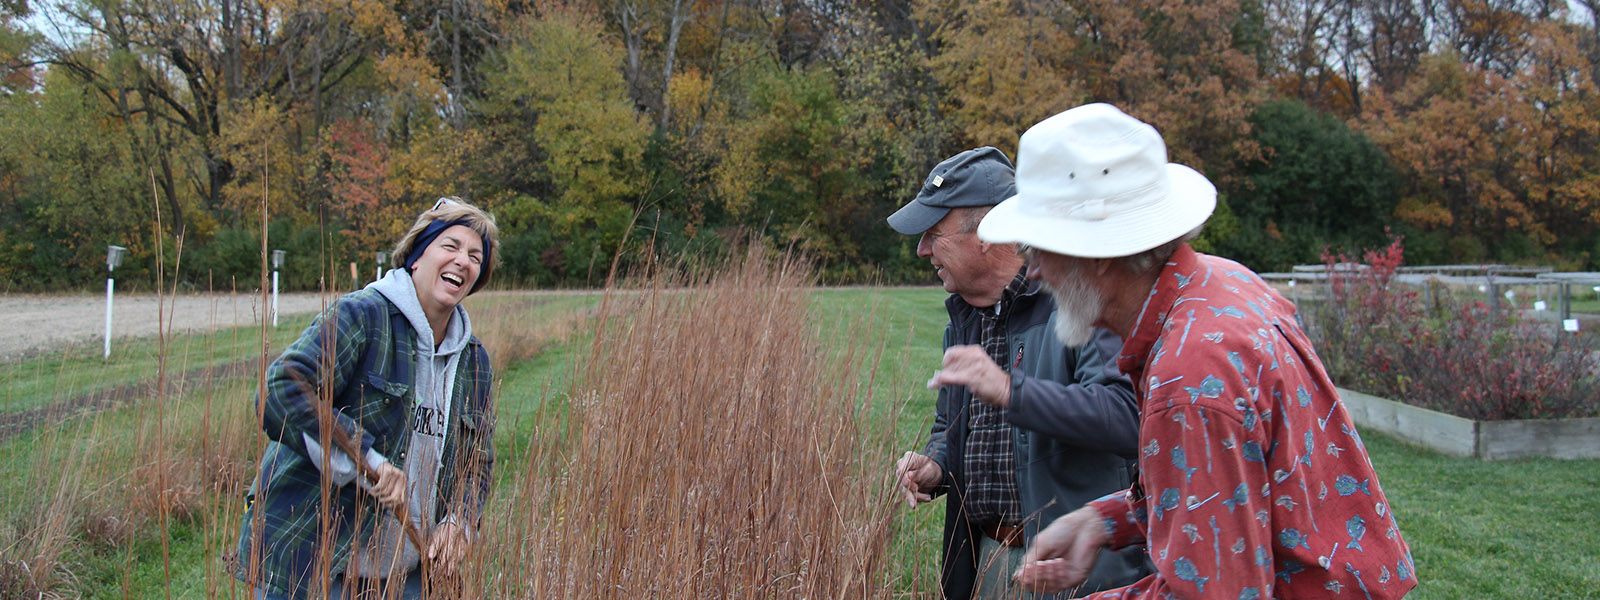 Volunteering by collecting seeds for the native plant program Wood County Park District